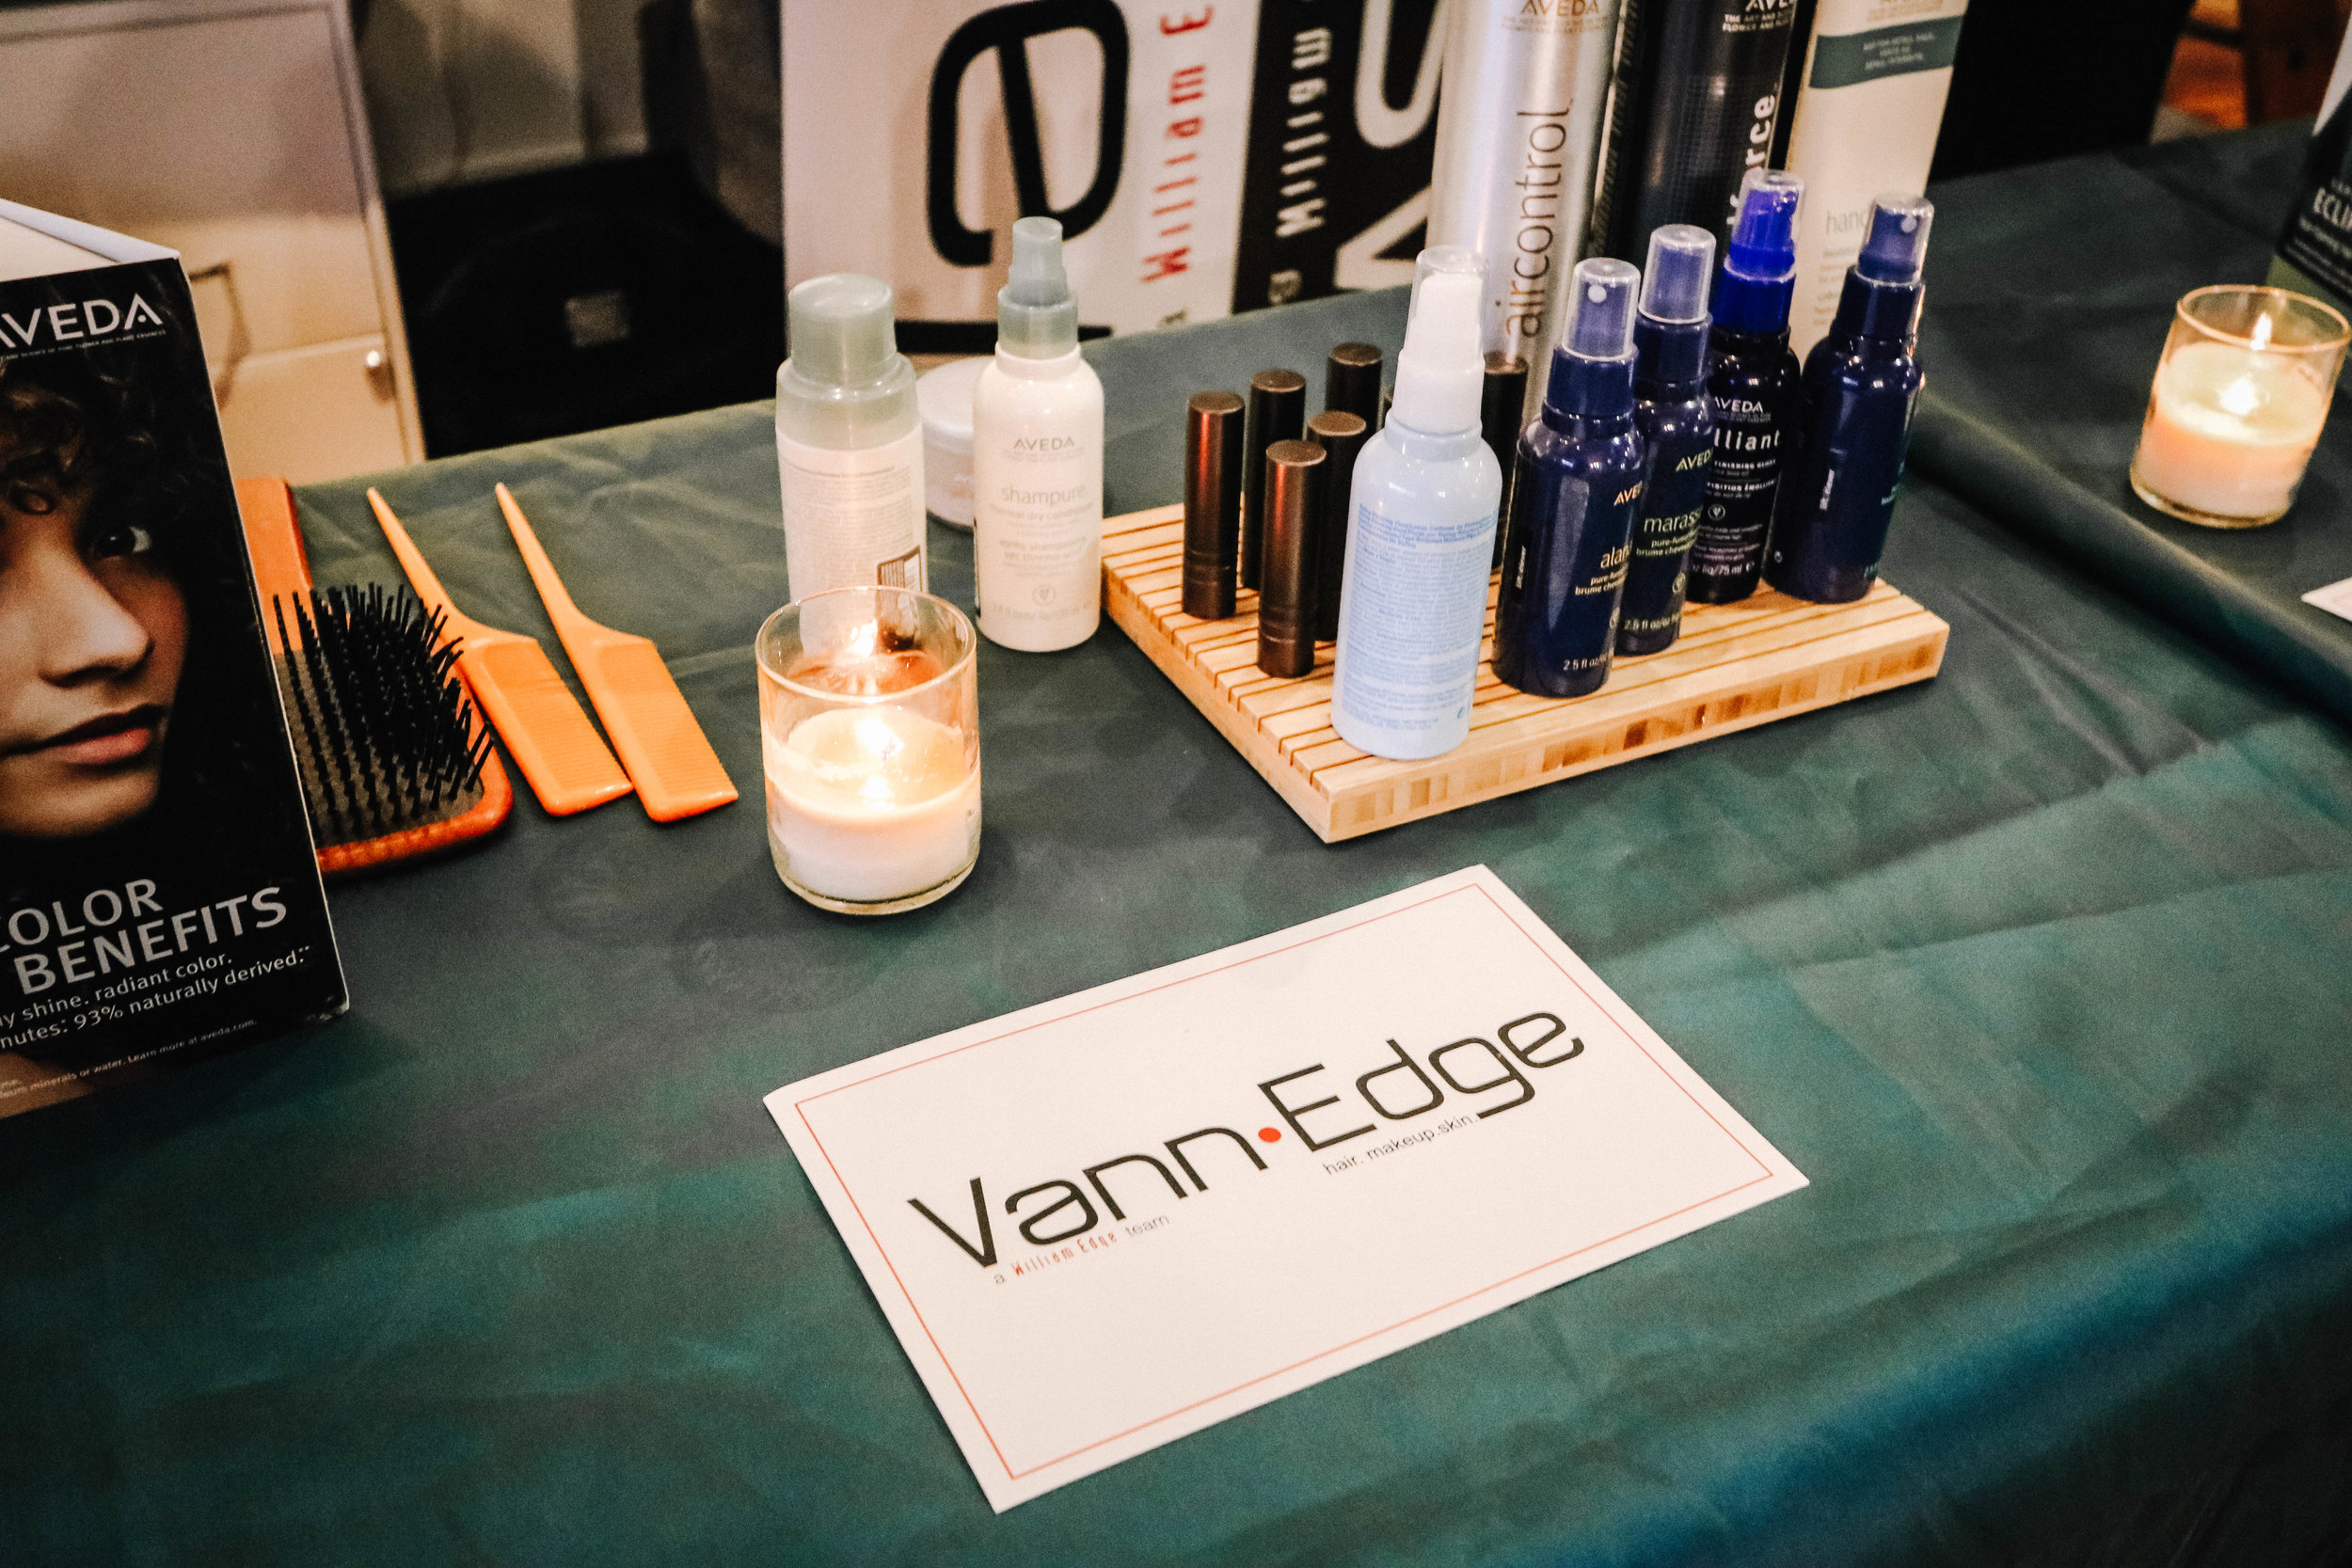 Pictured: Vann Edge Beauty Bar